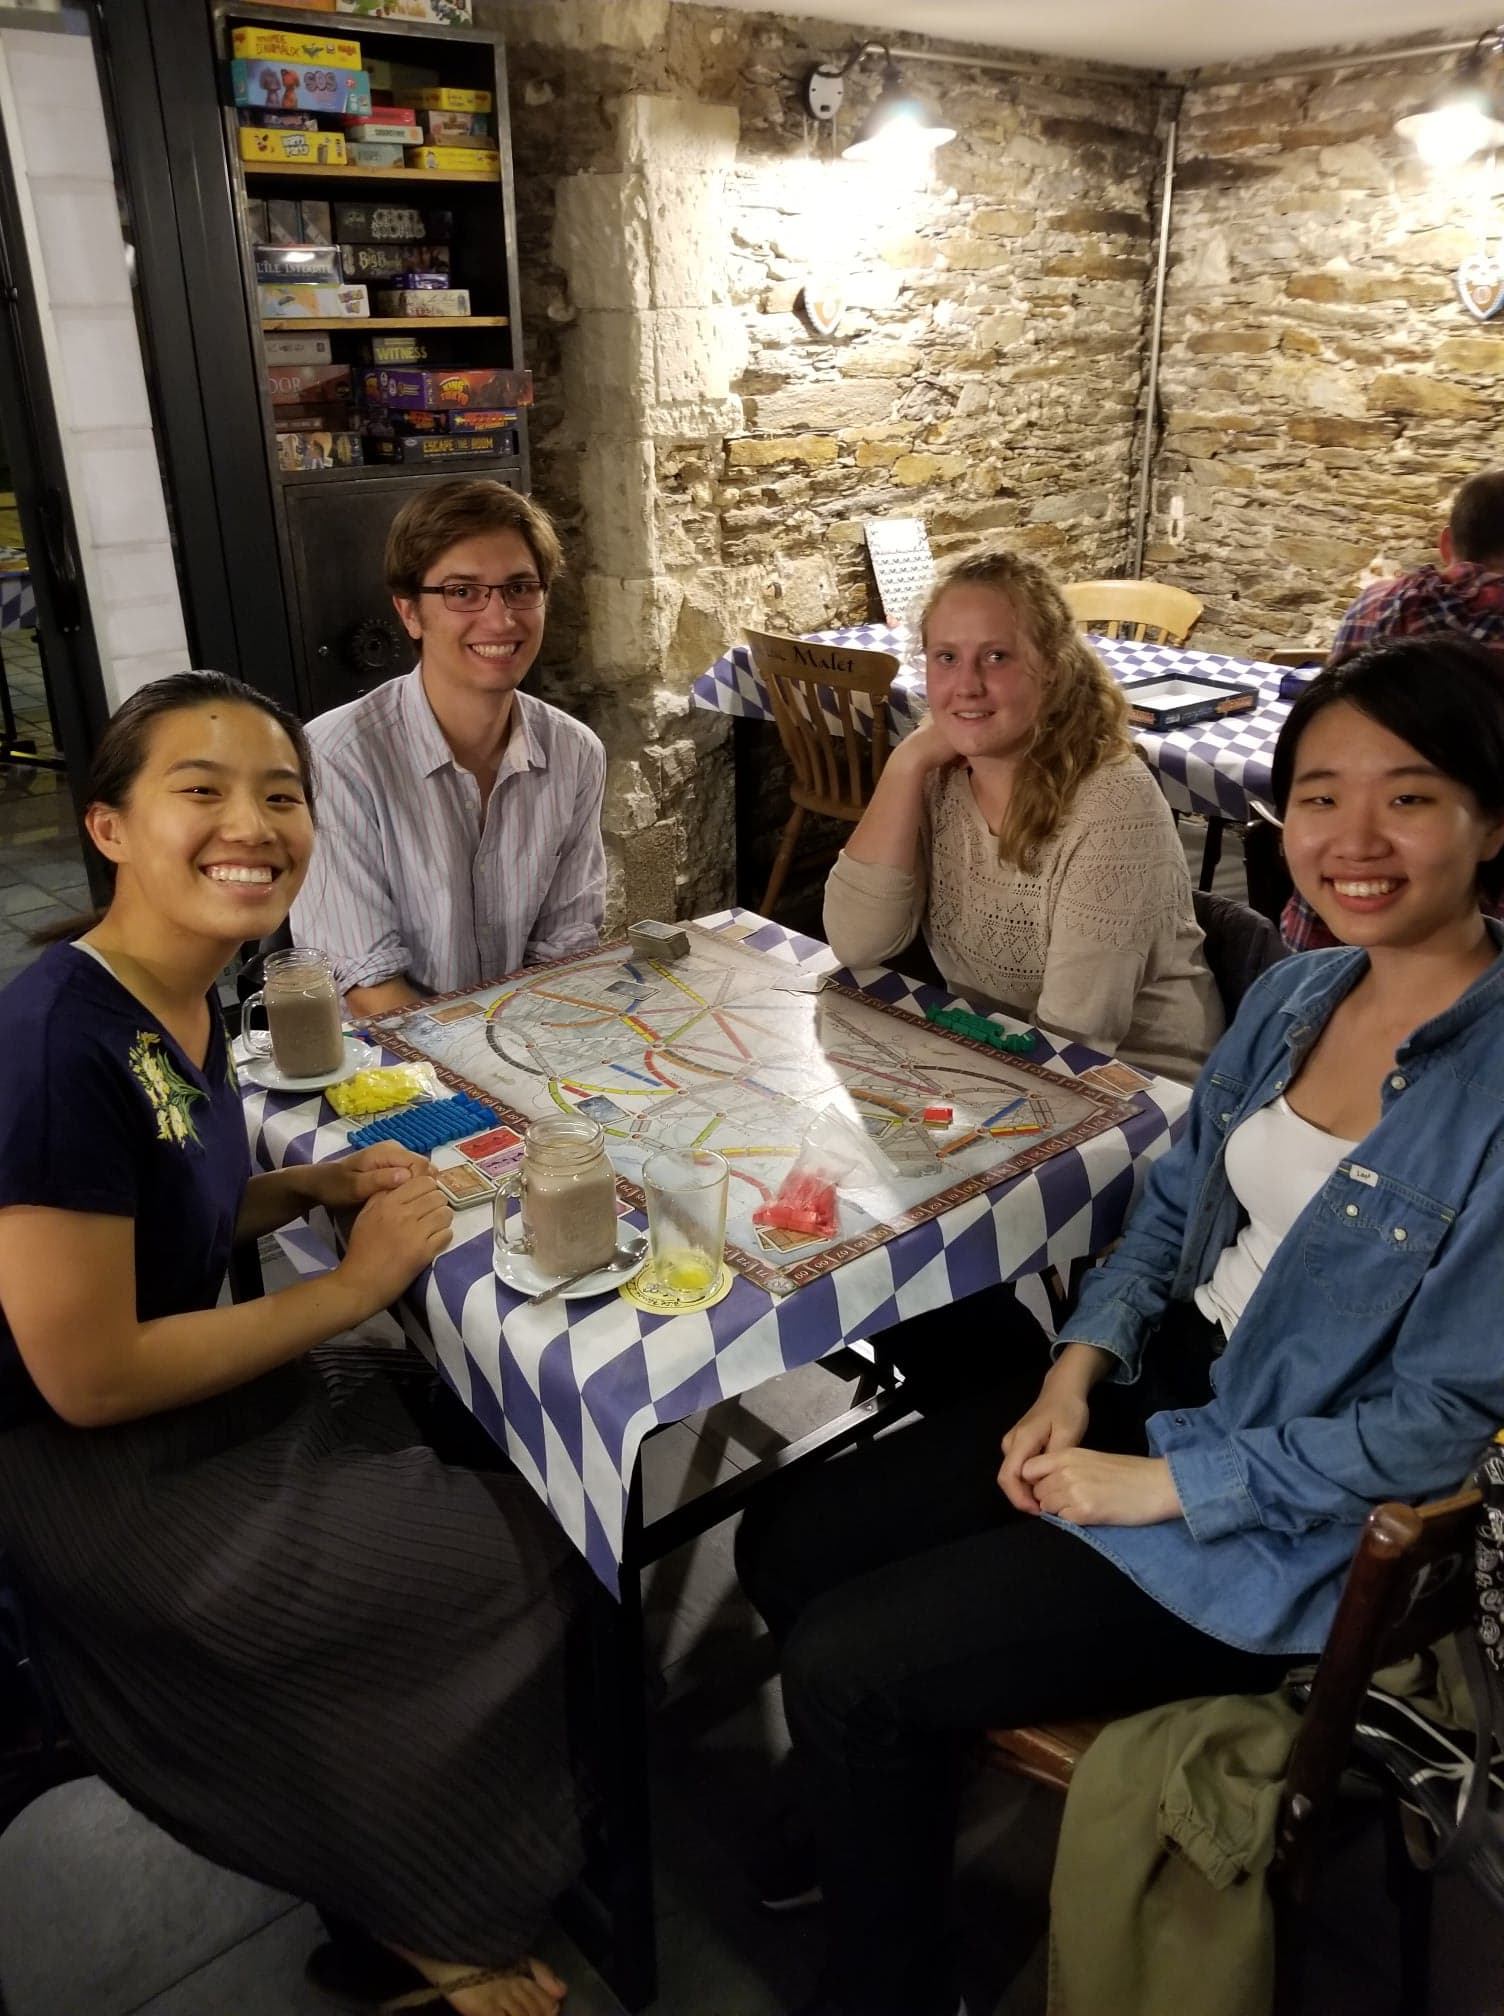 A group of four people seated by a table with Ticket to Ride on it